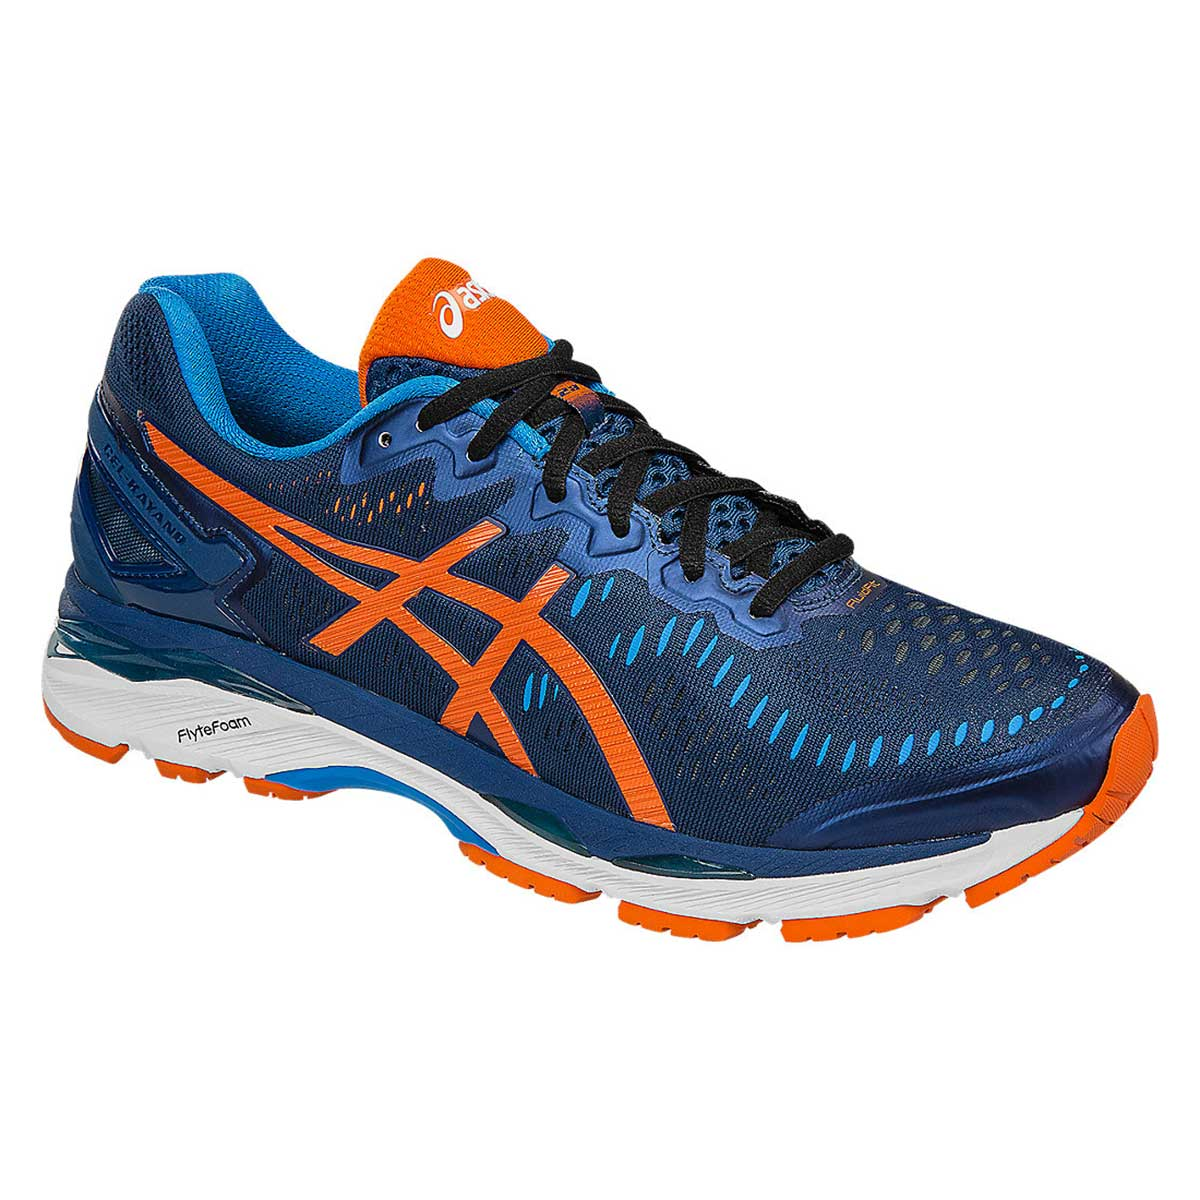 best authentic 9981d 19aff Asics Gel-Kayano 23 Running Shoes (Poseidon/Orange/Blue Jewel)